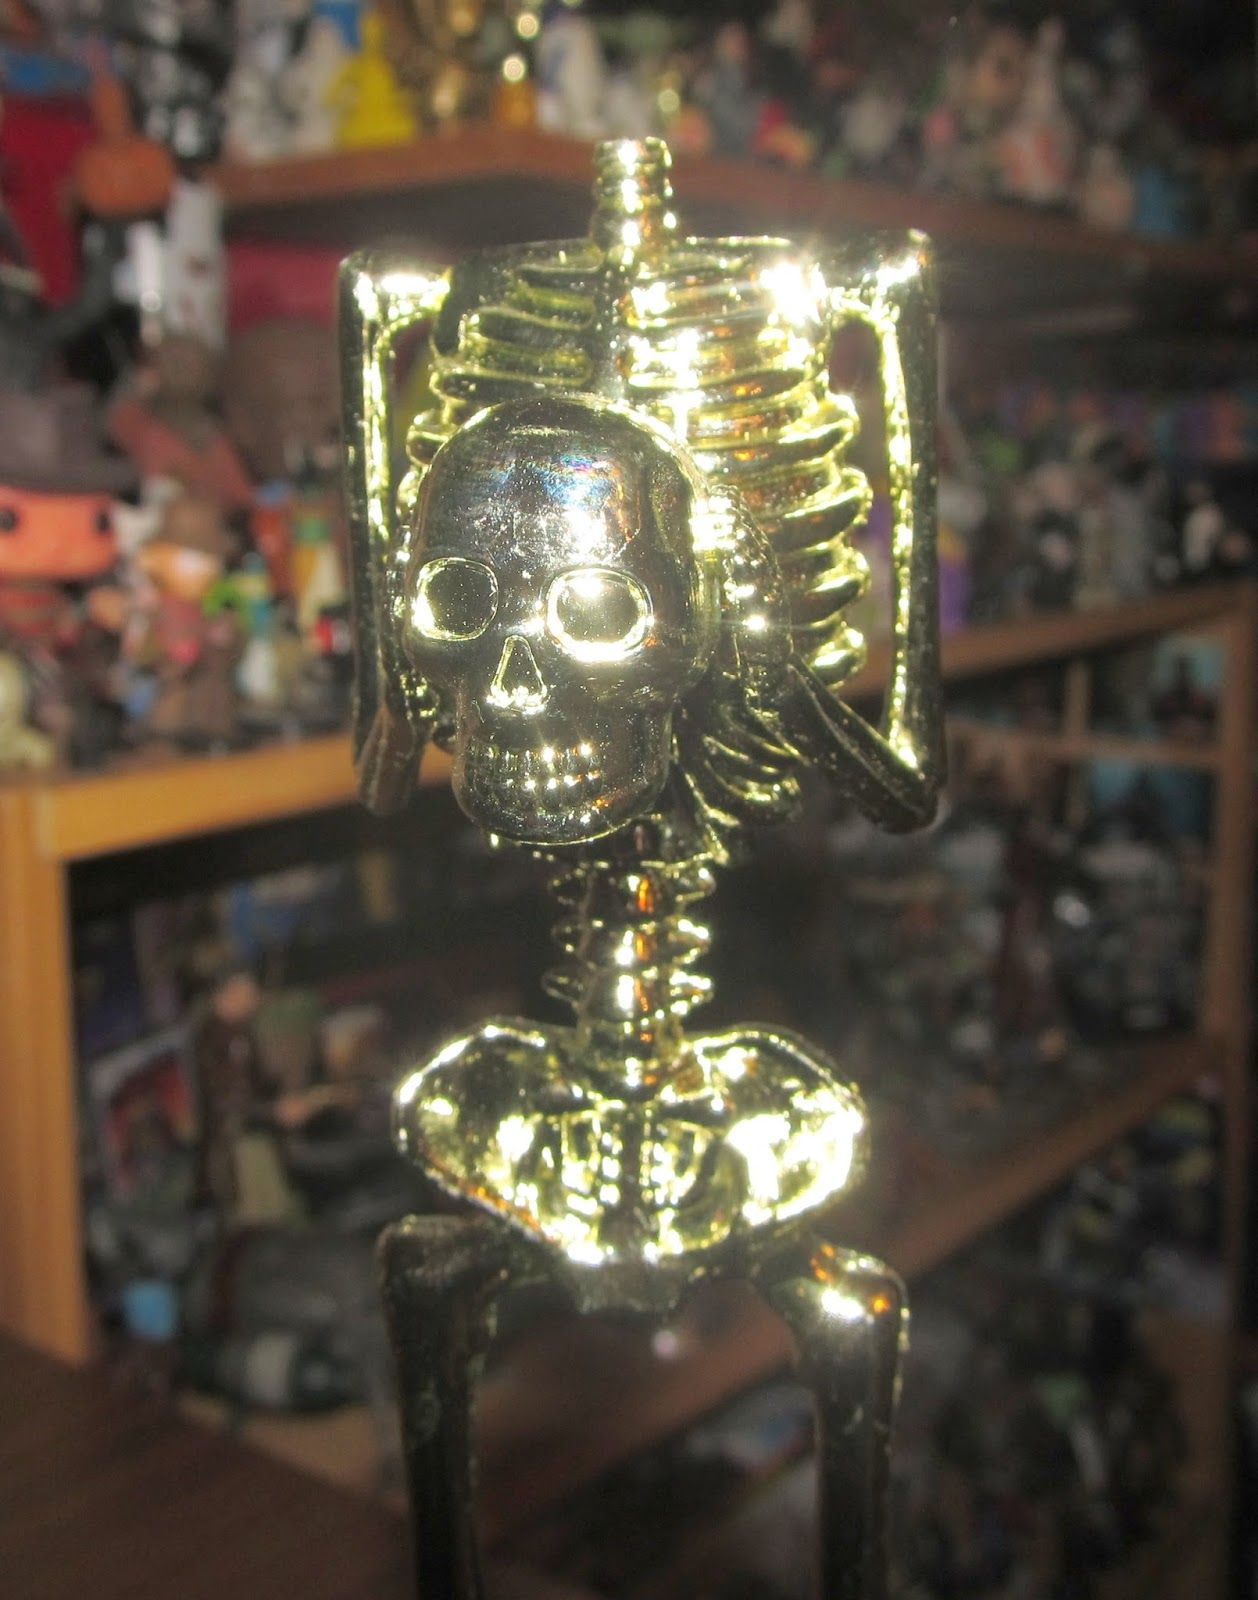 This is a Best Costume trophy that features a decapitated skeleton holding its own head! & Goodwill Hunting 4 Geeks: Countdown to Halloween Day 20: Clones ...